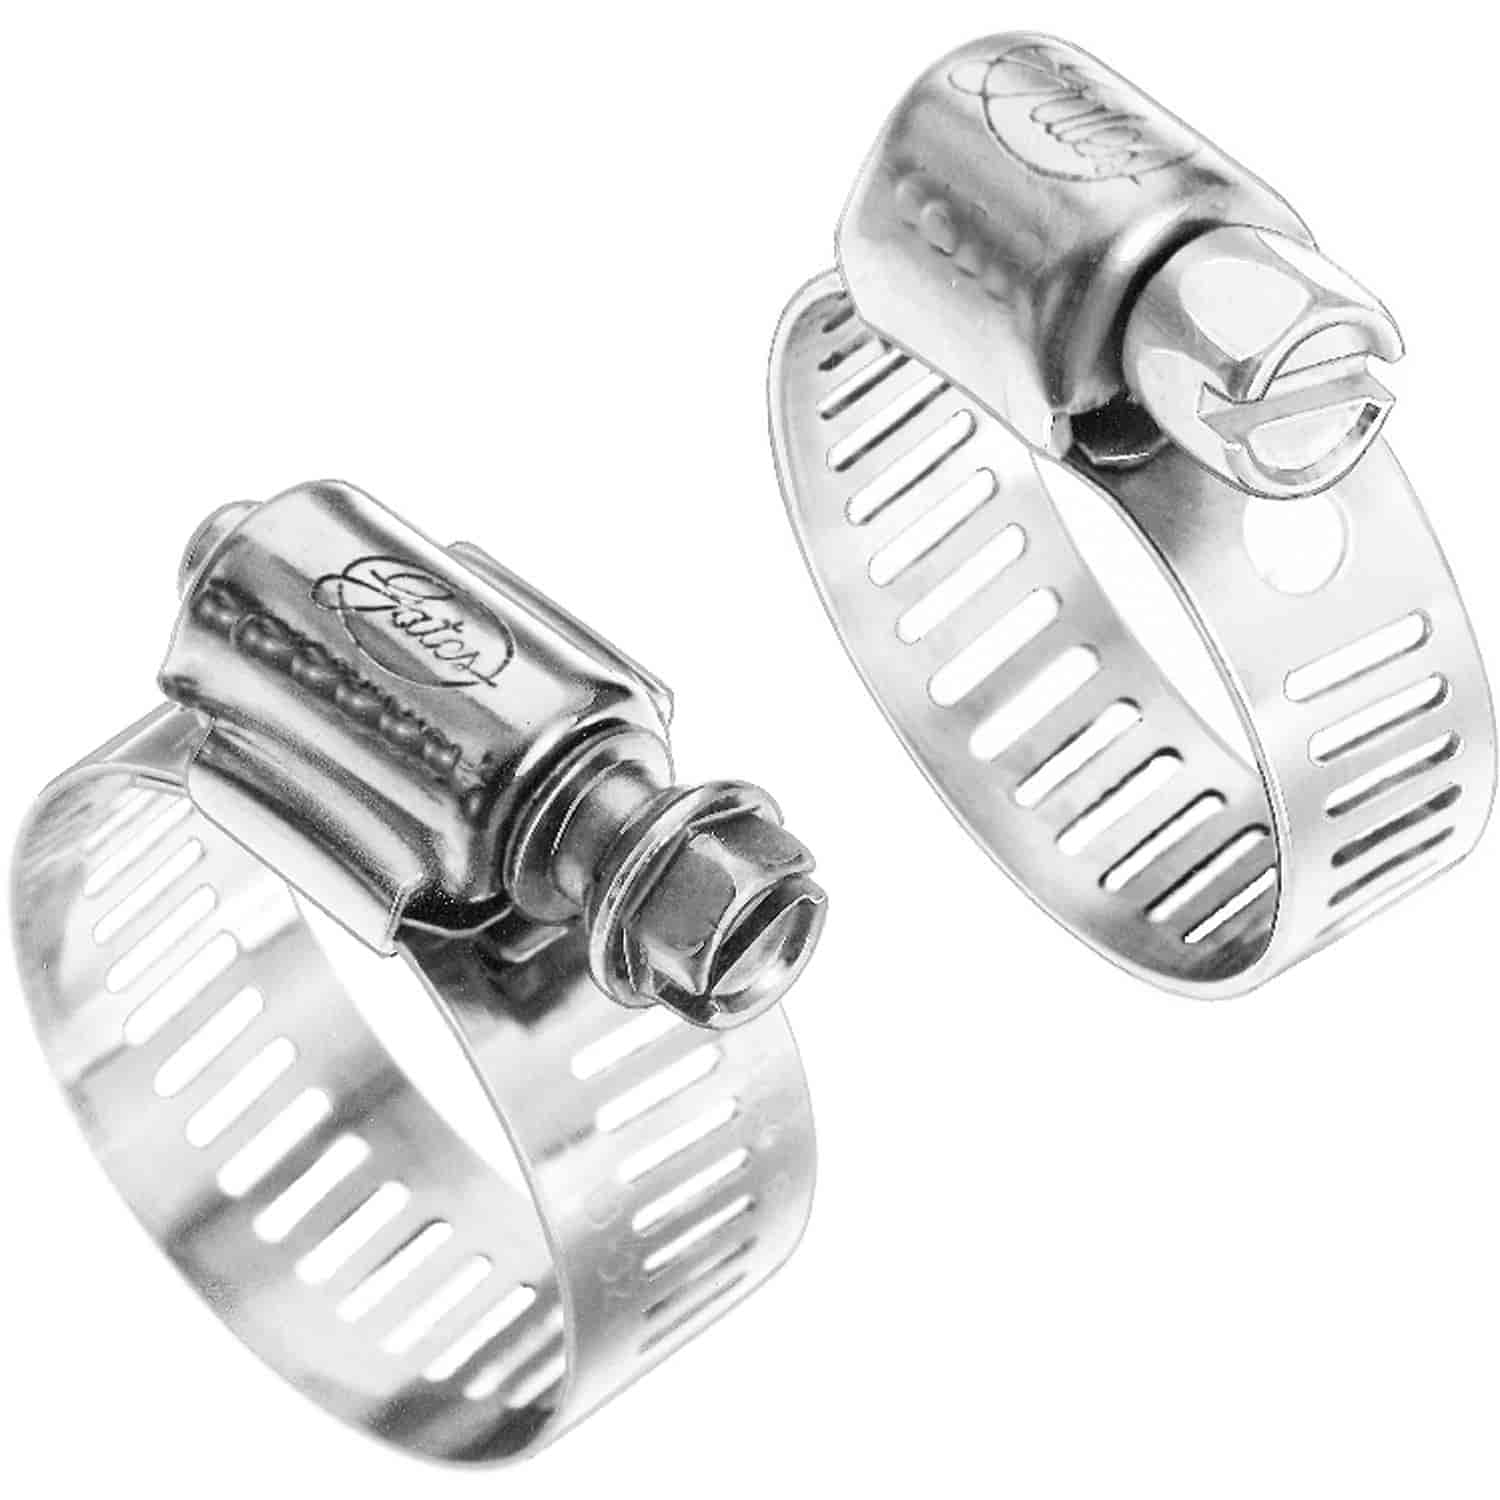 Gates stainless steel hose clamps size